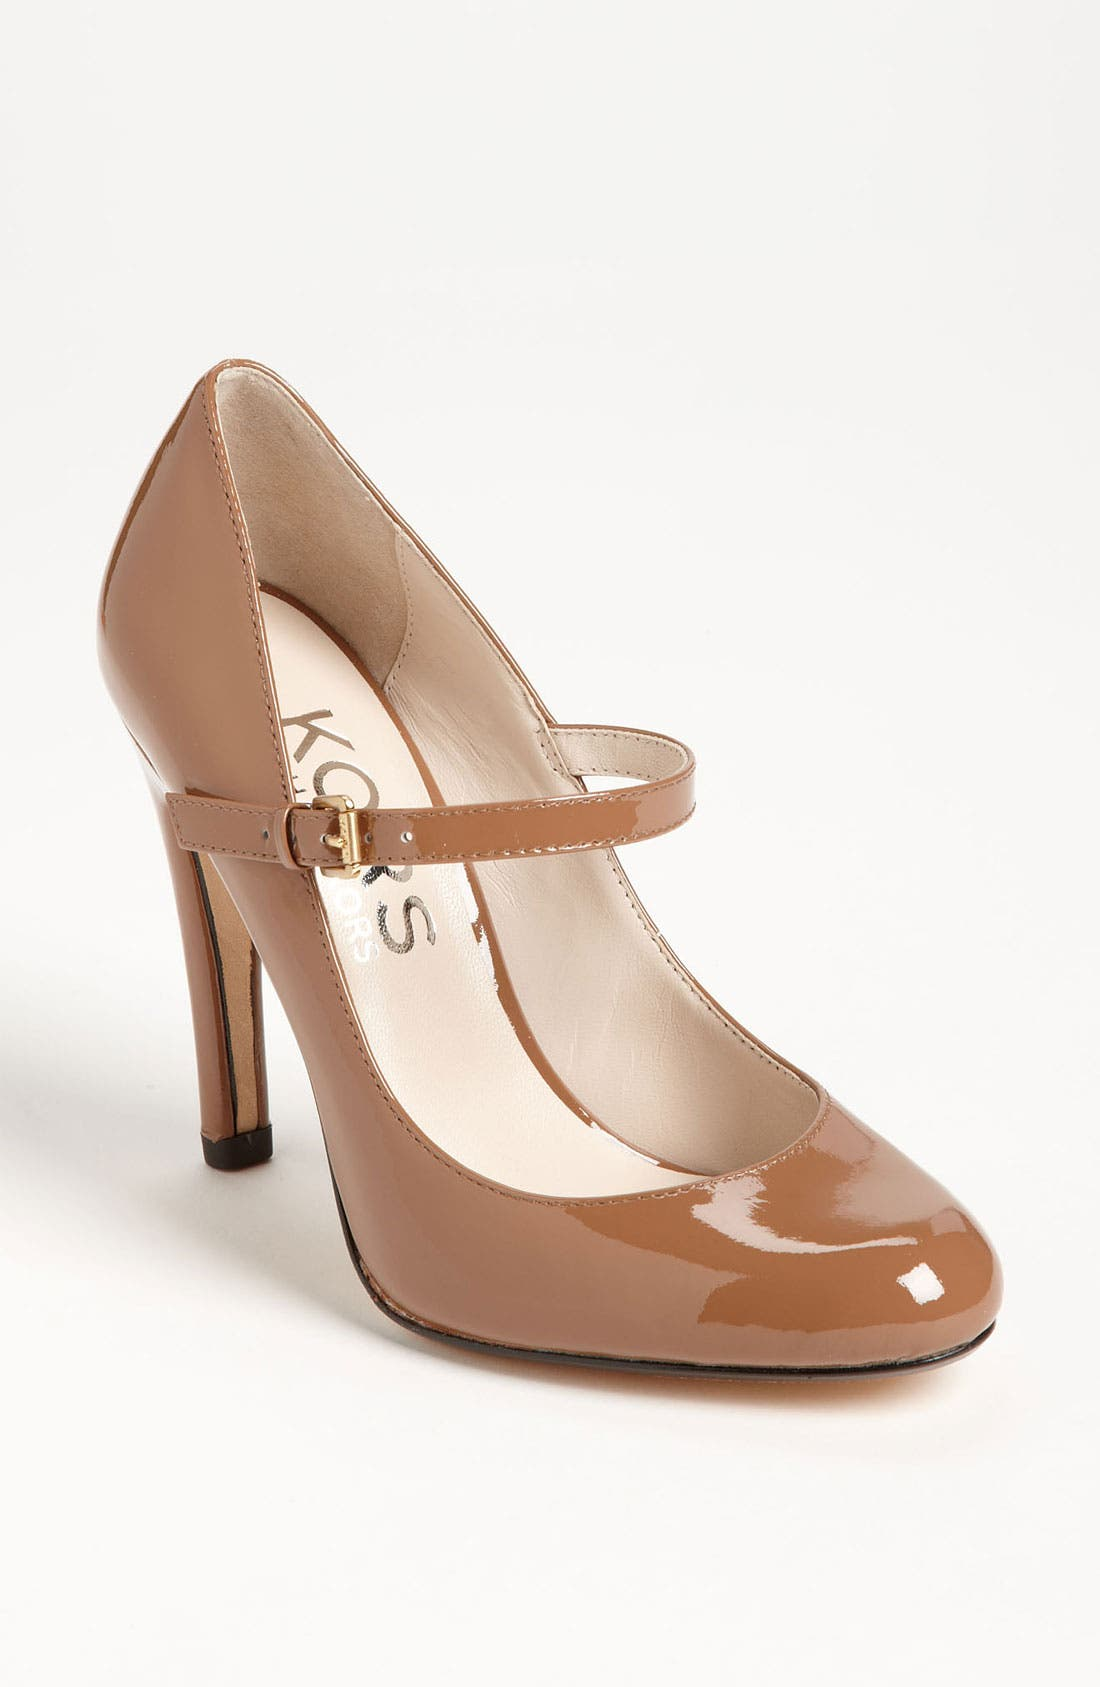 Alternate Image 1 Selected - KORS Michael Kors 'Galli' Pump